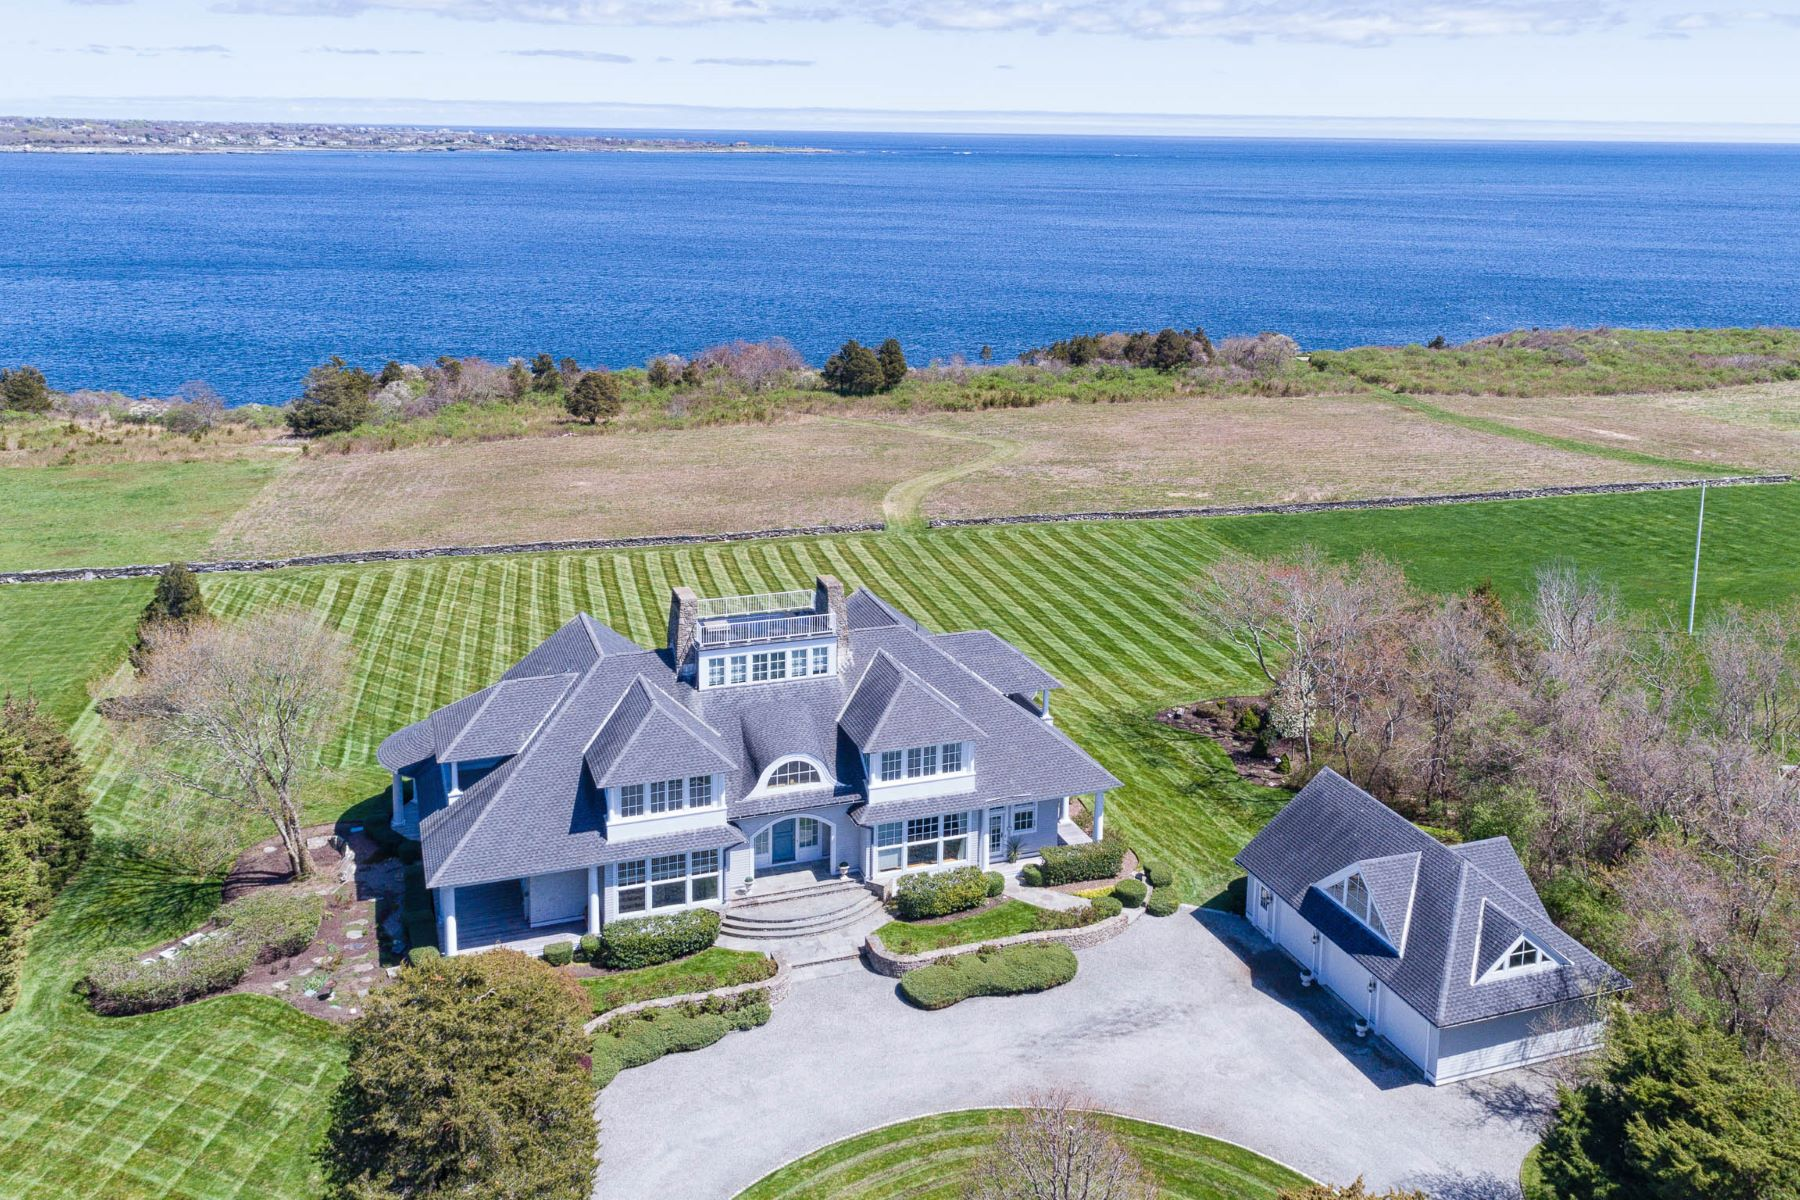 Single Family Homes for Sale at 597 Beavertail Road, Jamestown, RI 597 Beavertail Road Jamestown, Rhode Island 02835 United States